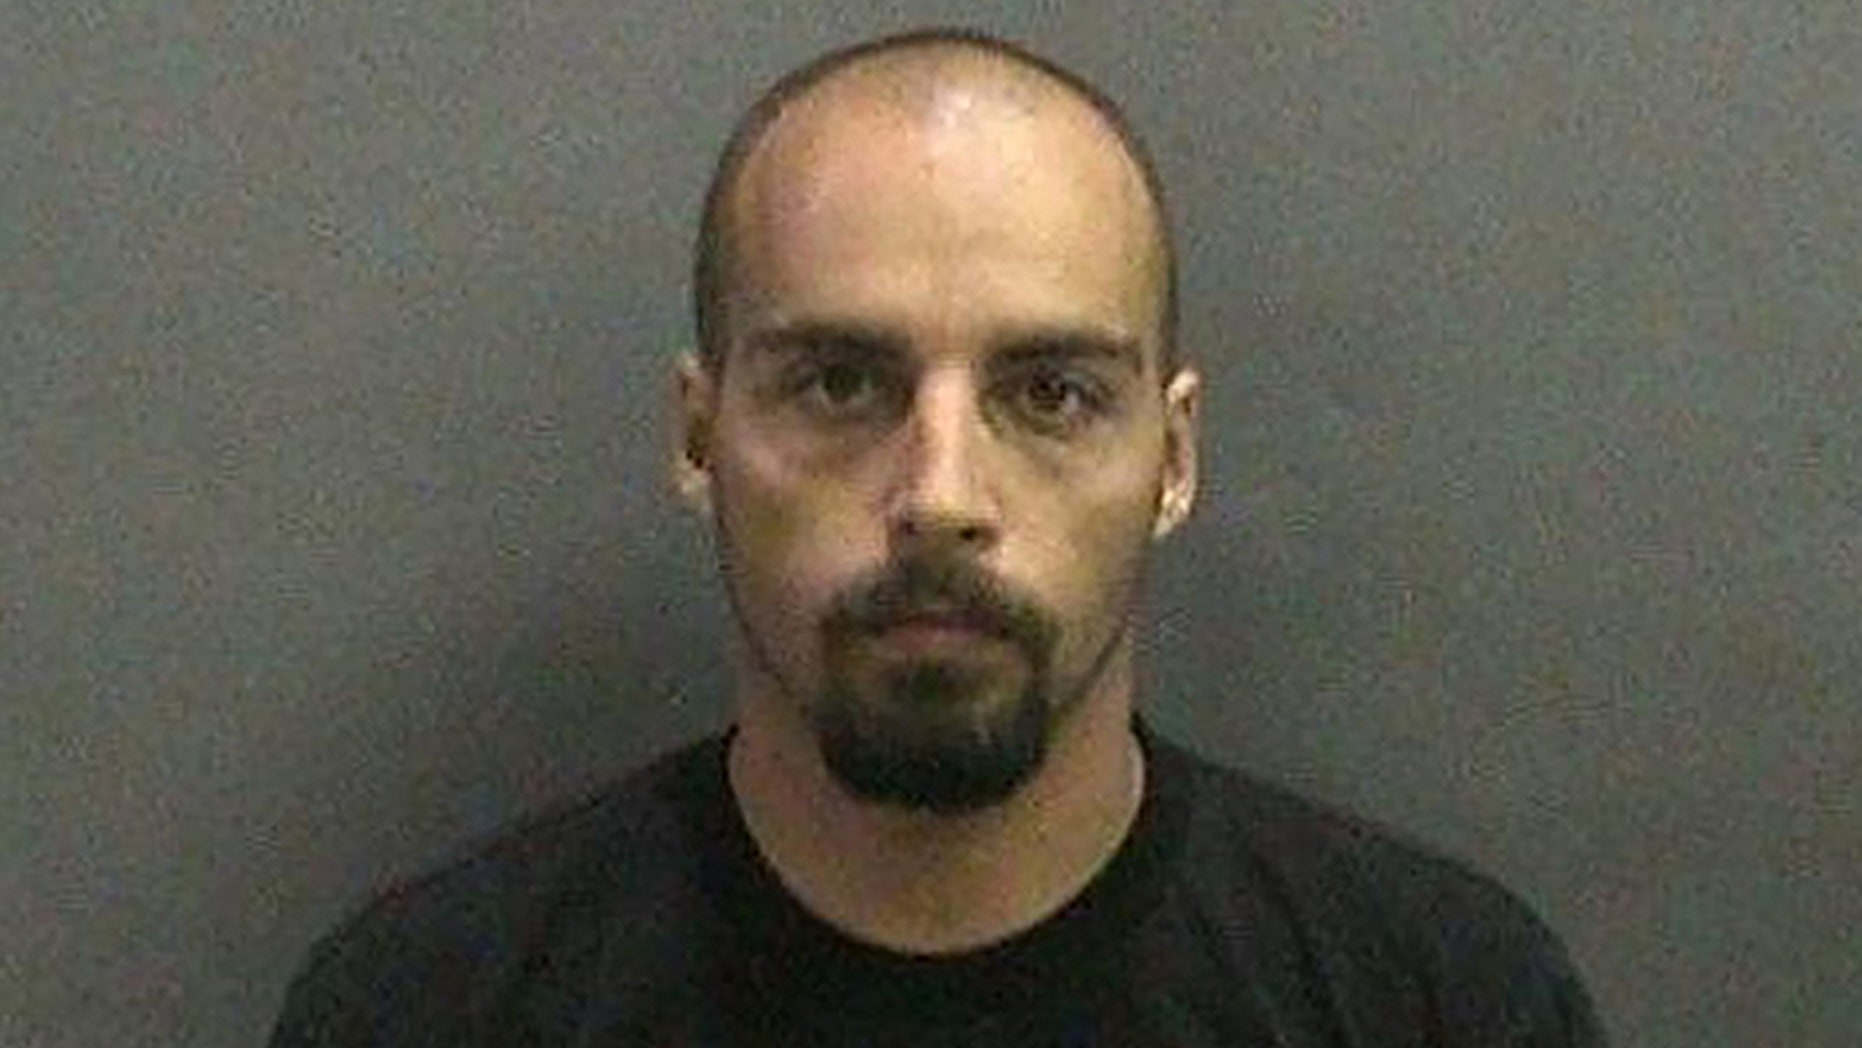 Joseph Jordan Taylor - the son of Hole in the Wall Gang surfer and surf shop owner John Reid Taylor - plead guilty in failed murder-for-hire plot.